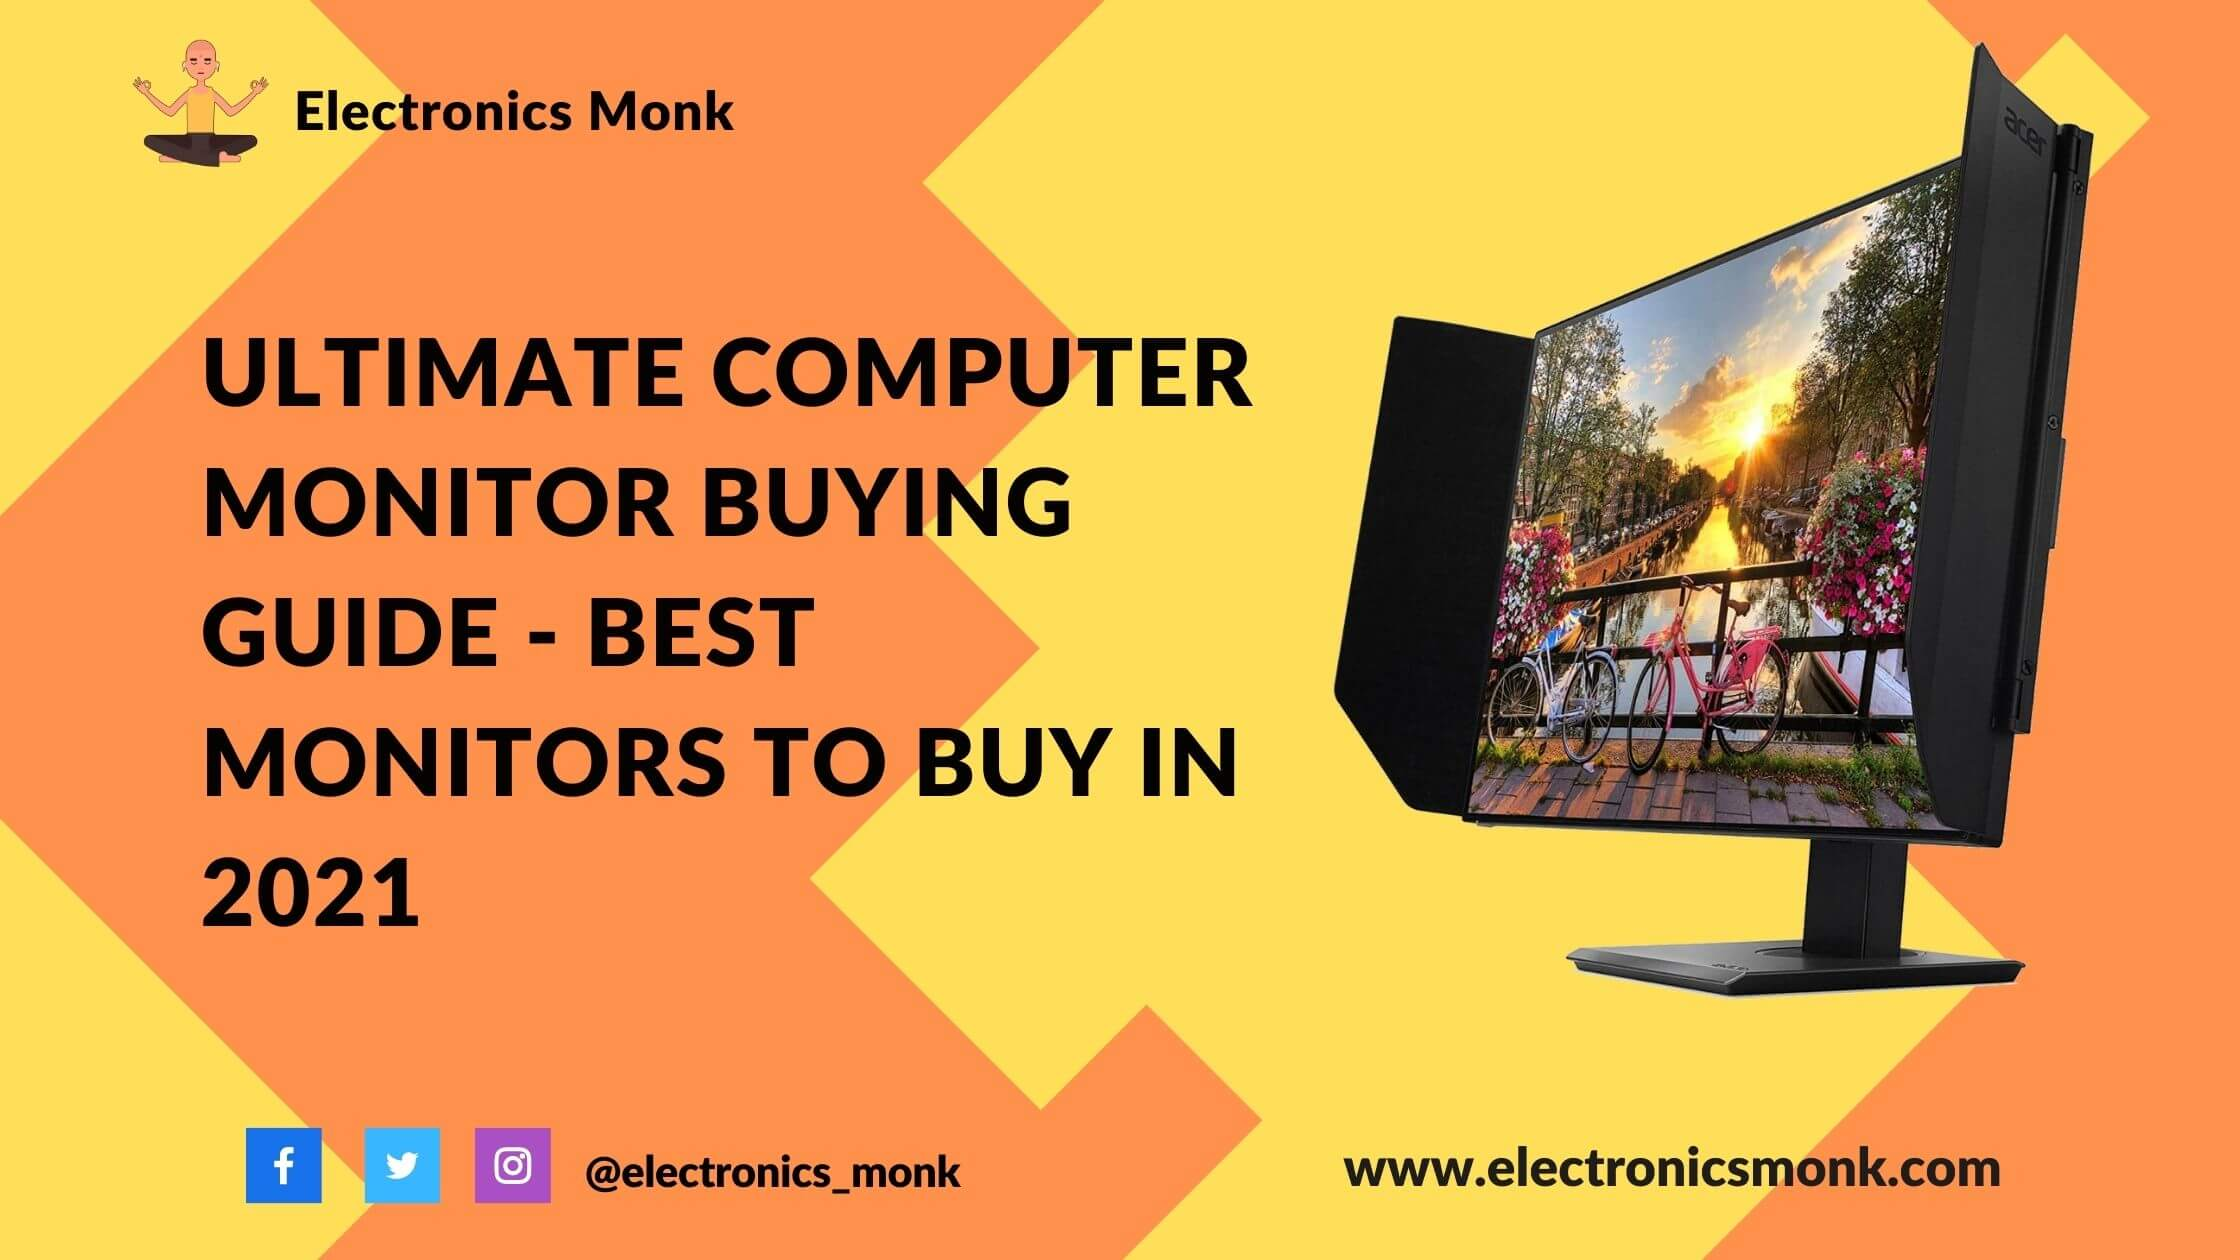 Ultimate Computer Monitors Buying Guide - Best Monitors To Buy in 2021